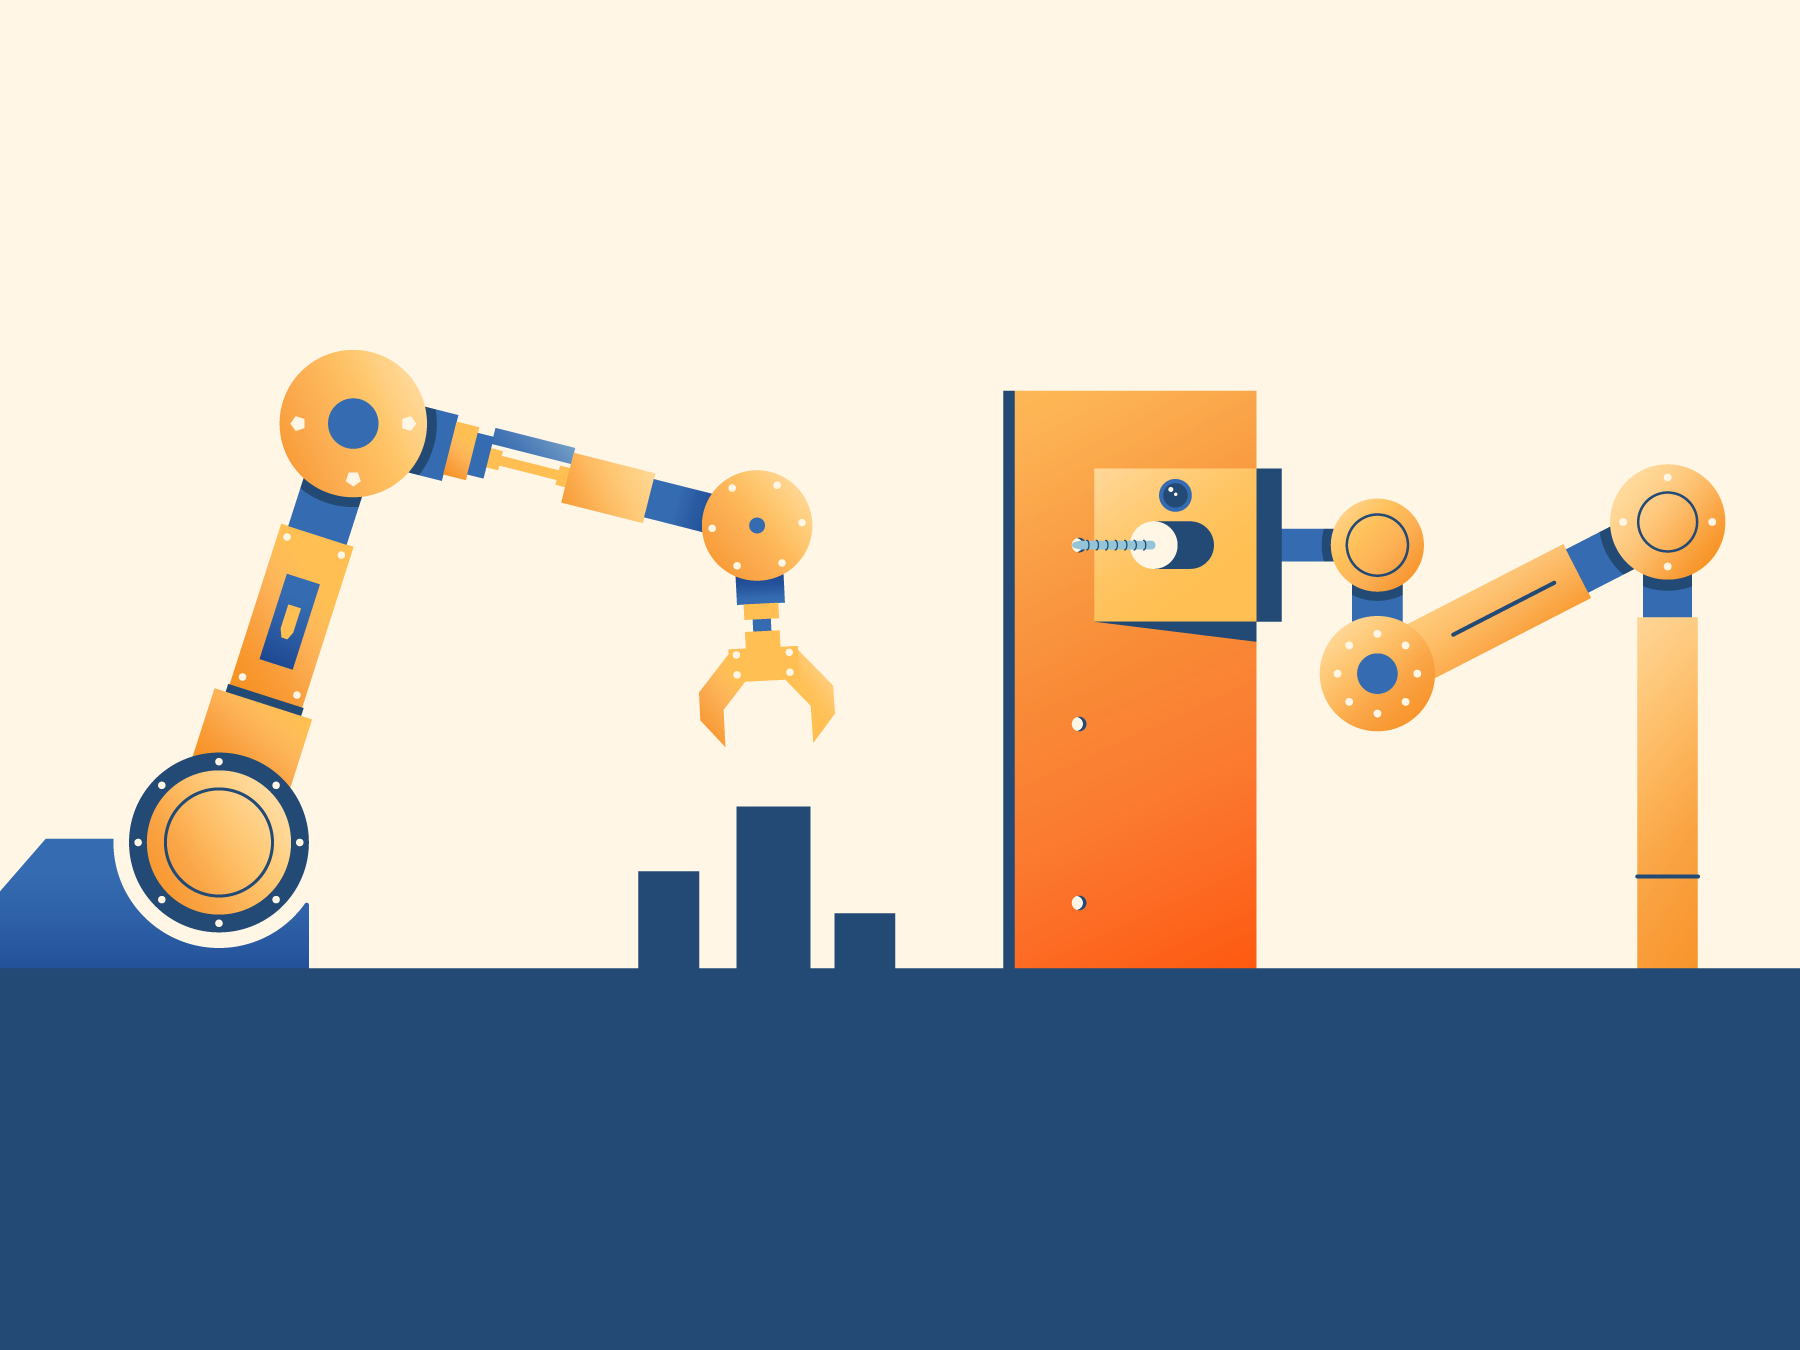 How Construction Robots Will Change The Industry